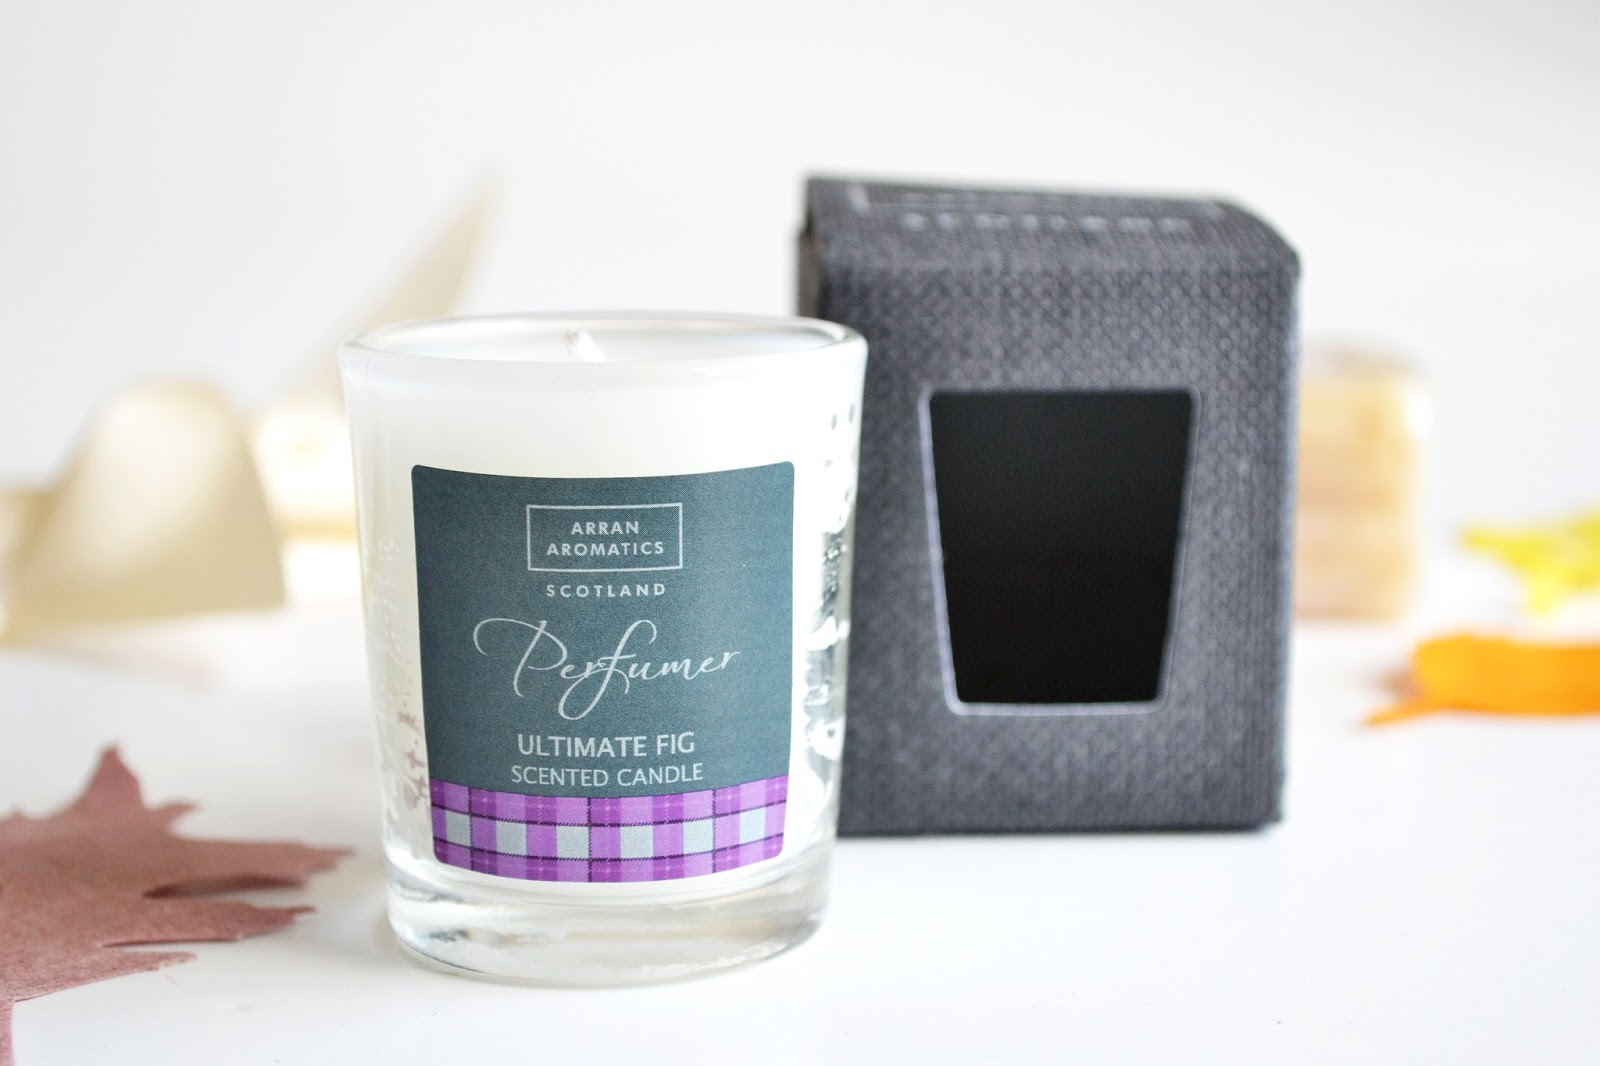 arran aromatics candle, fig candle